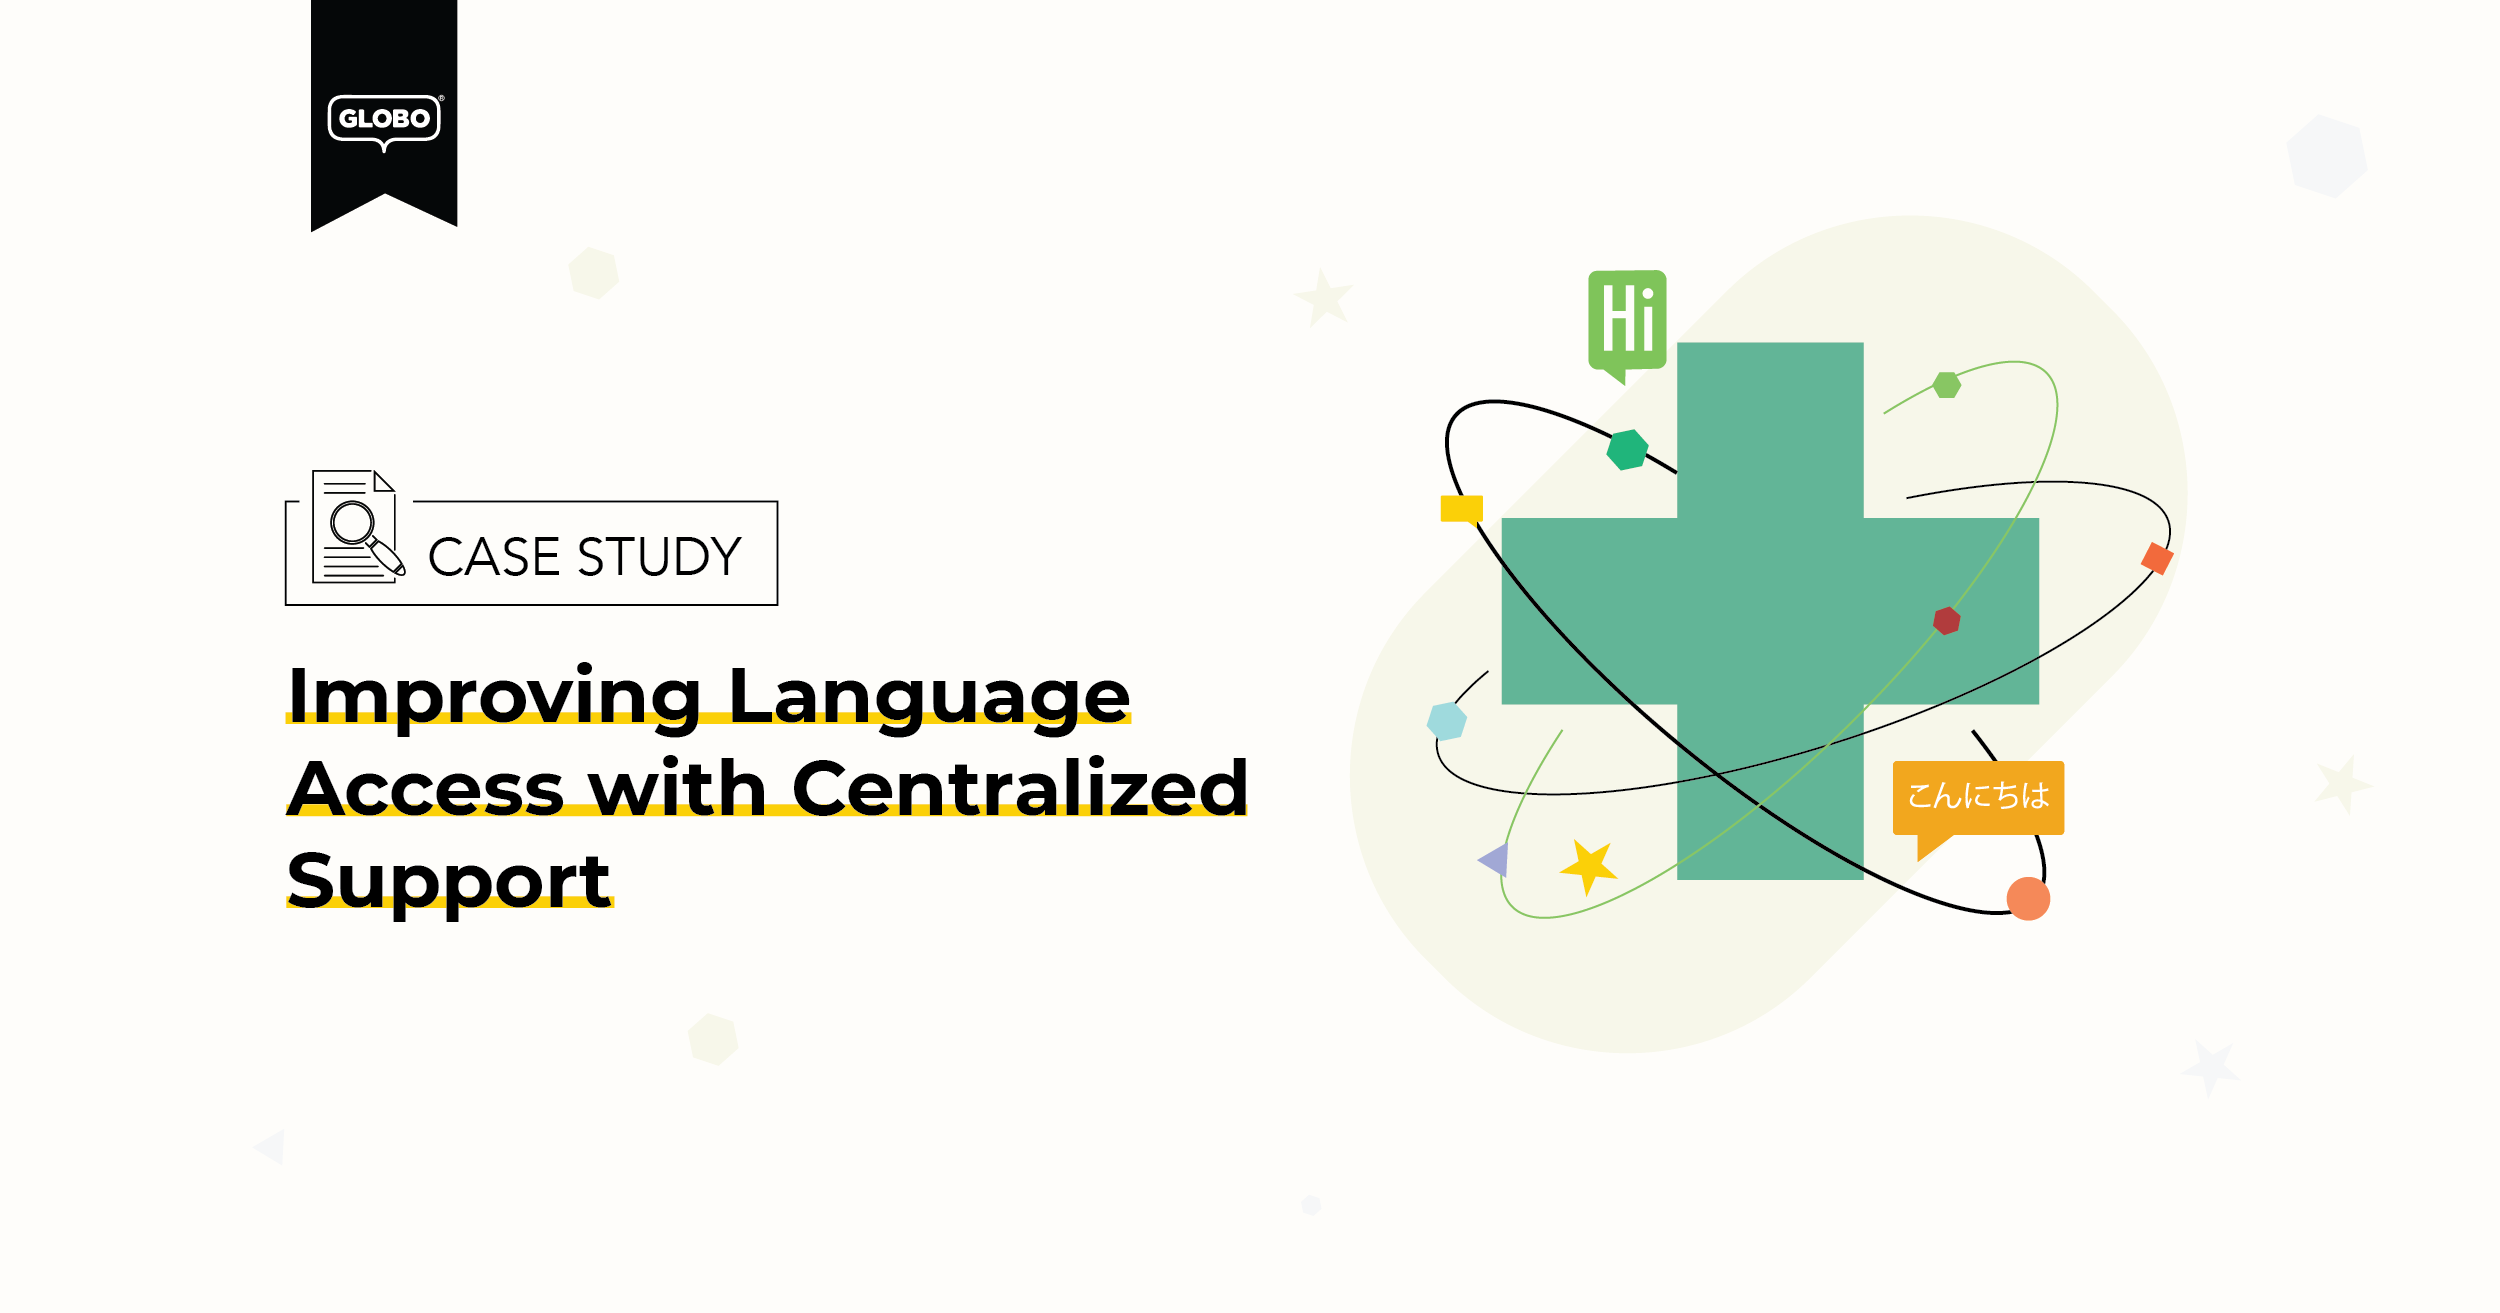 Improving Language Access with Centralized Suport-01